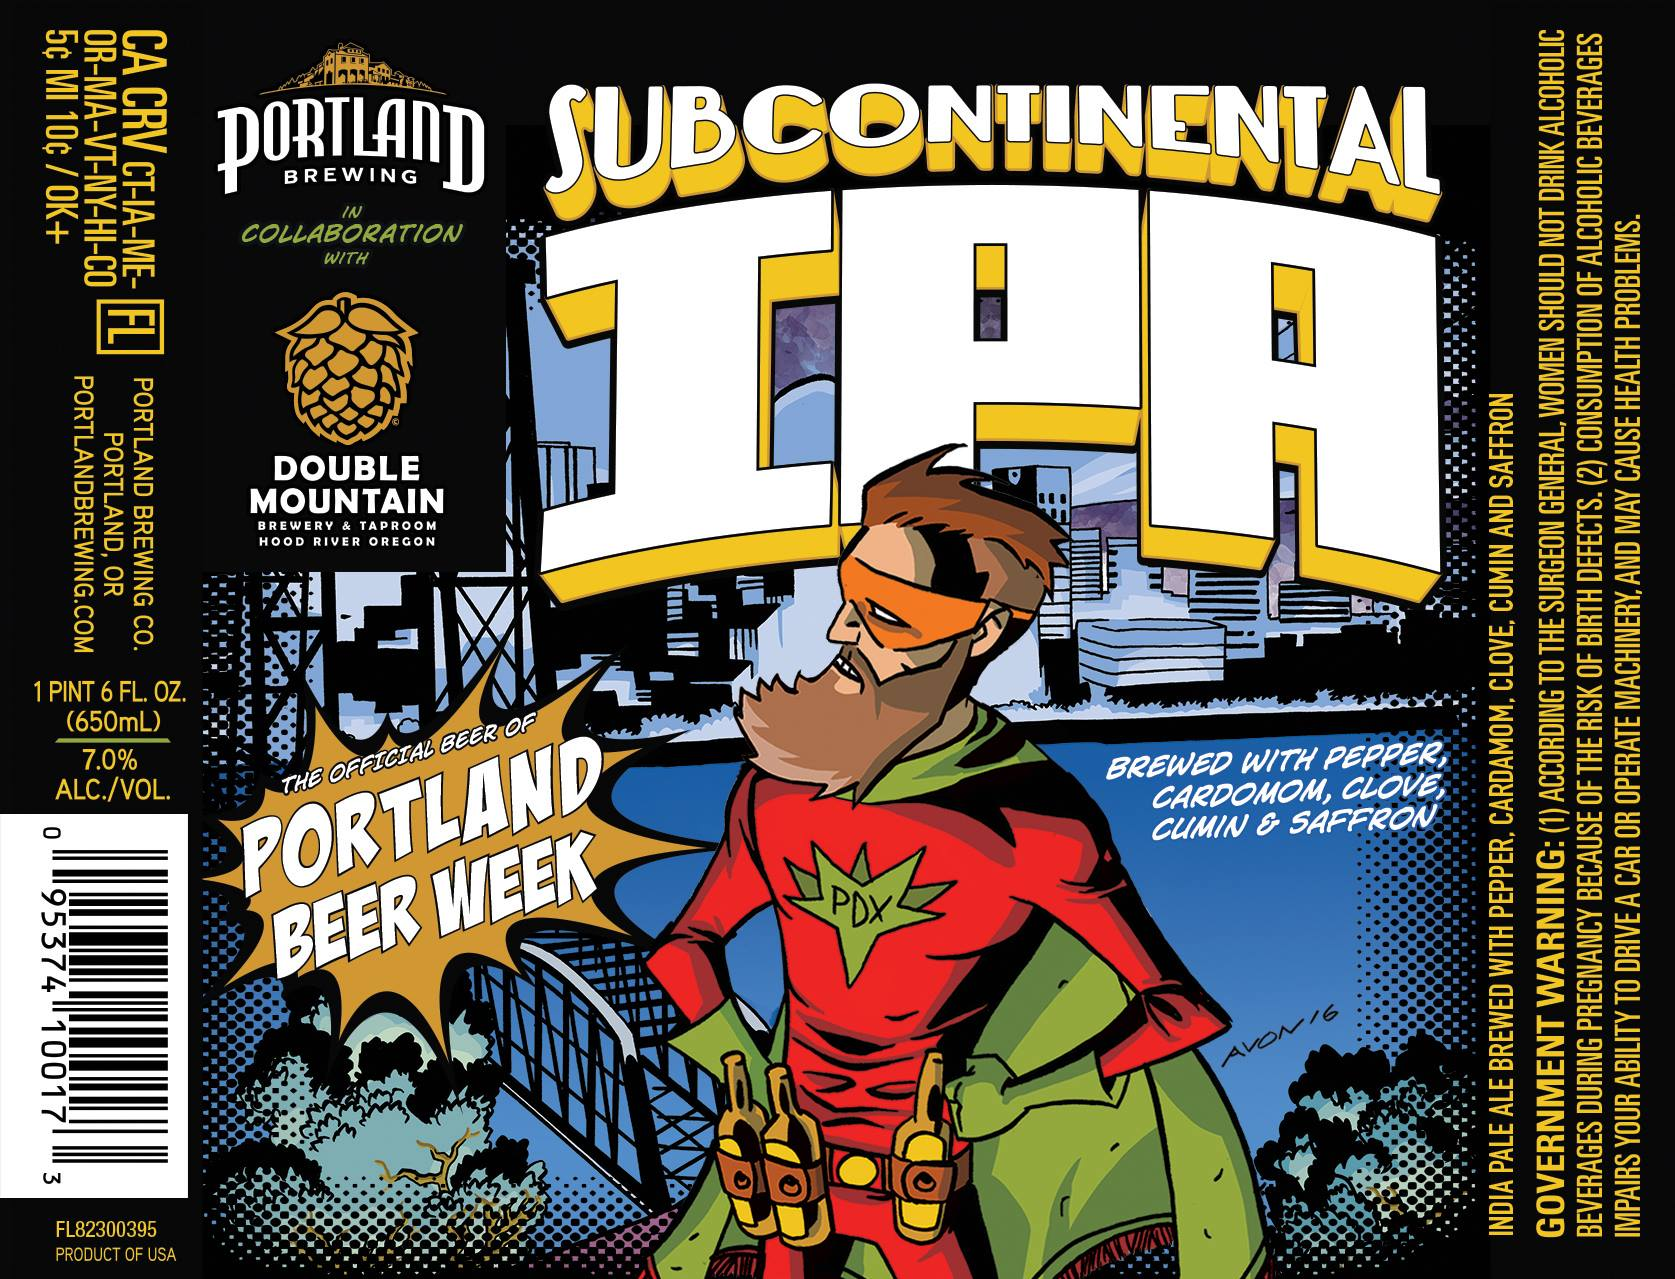 Portland Brewing and Double Mountain Brewery Subcontinental IPA. (image courtesy of PDX Beer Week Facebook Page)